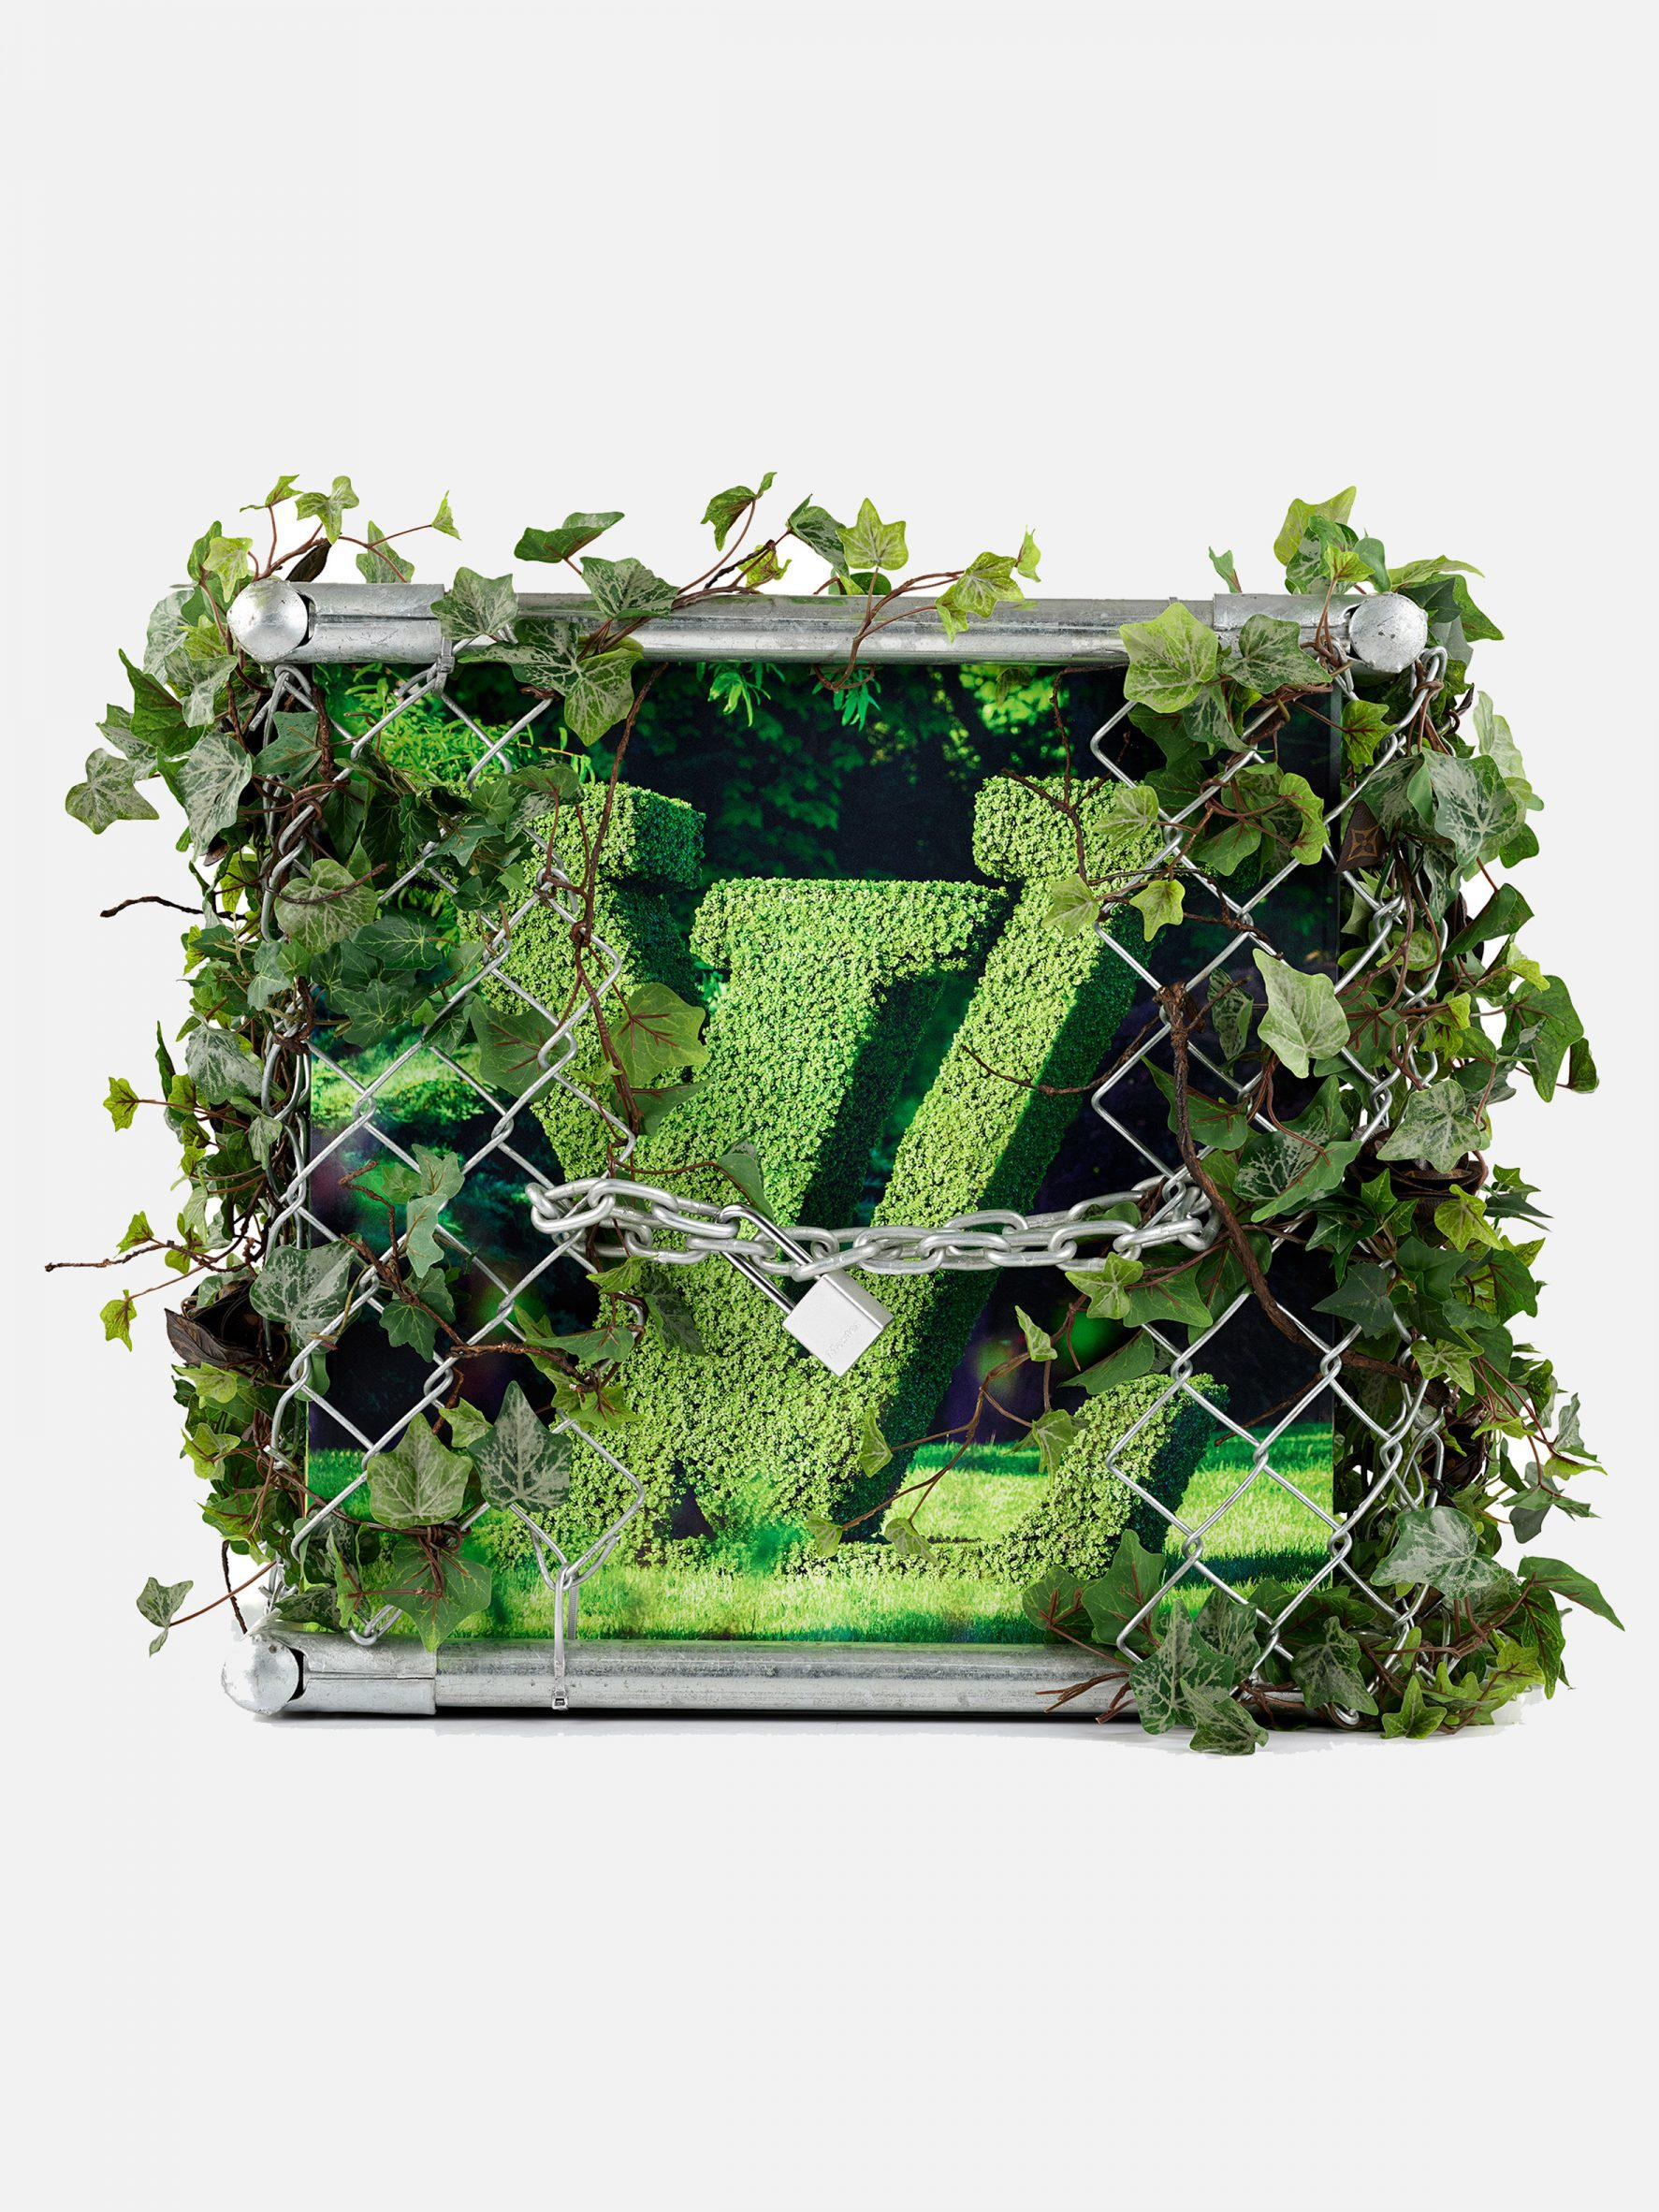 A green Louis Vuitton trunk covered in plants and a silver chain